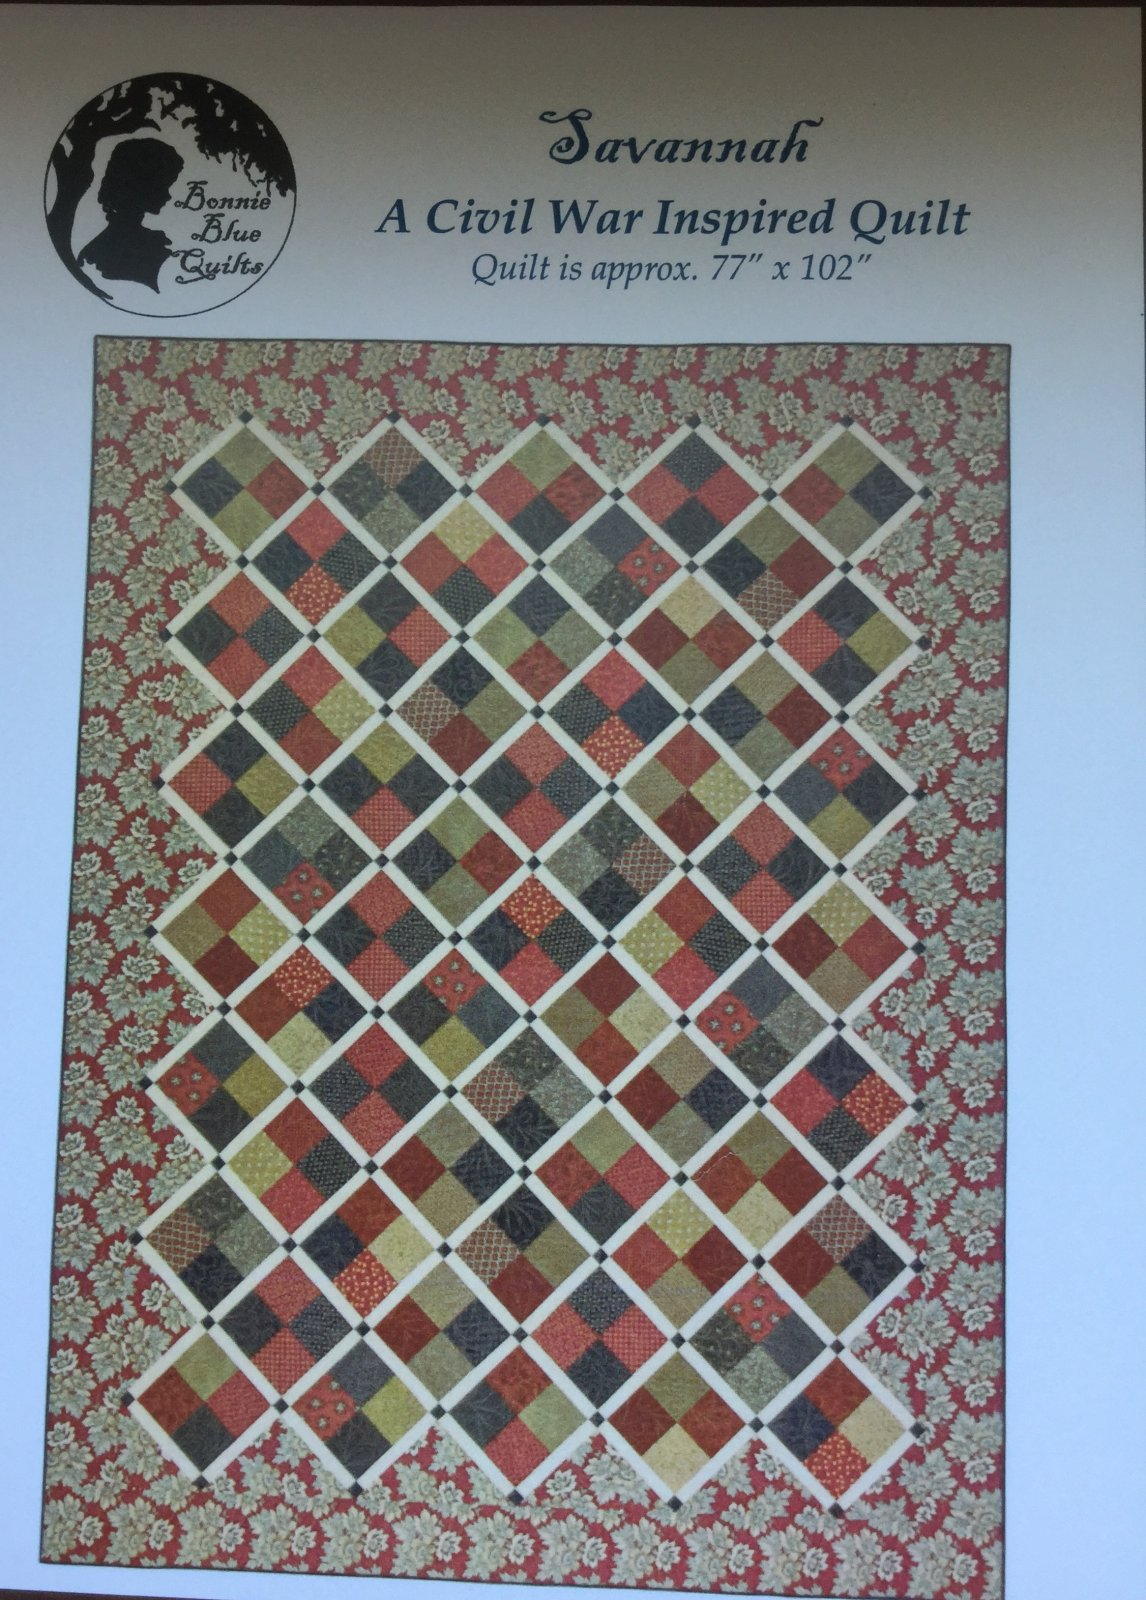 Savannah Quilt Pattern - Red Crinoline Quilts. -  77 X 102